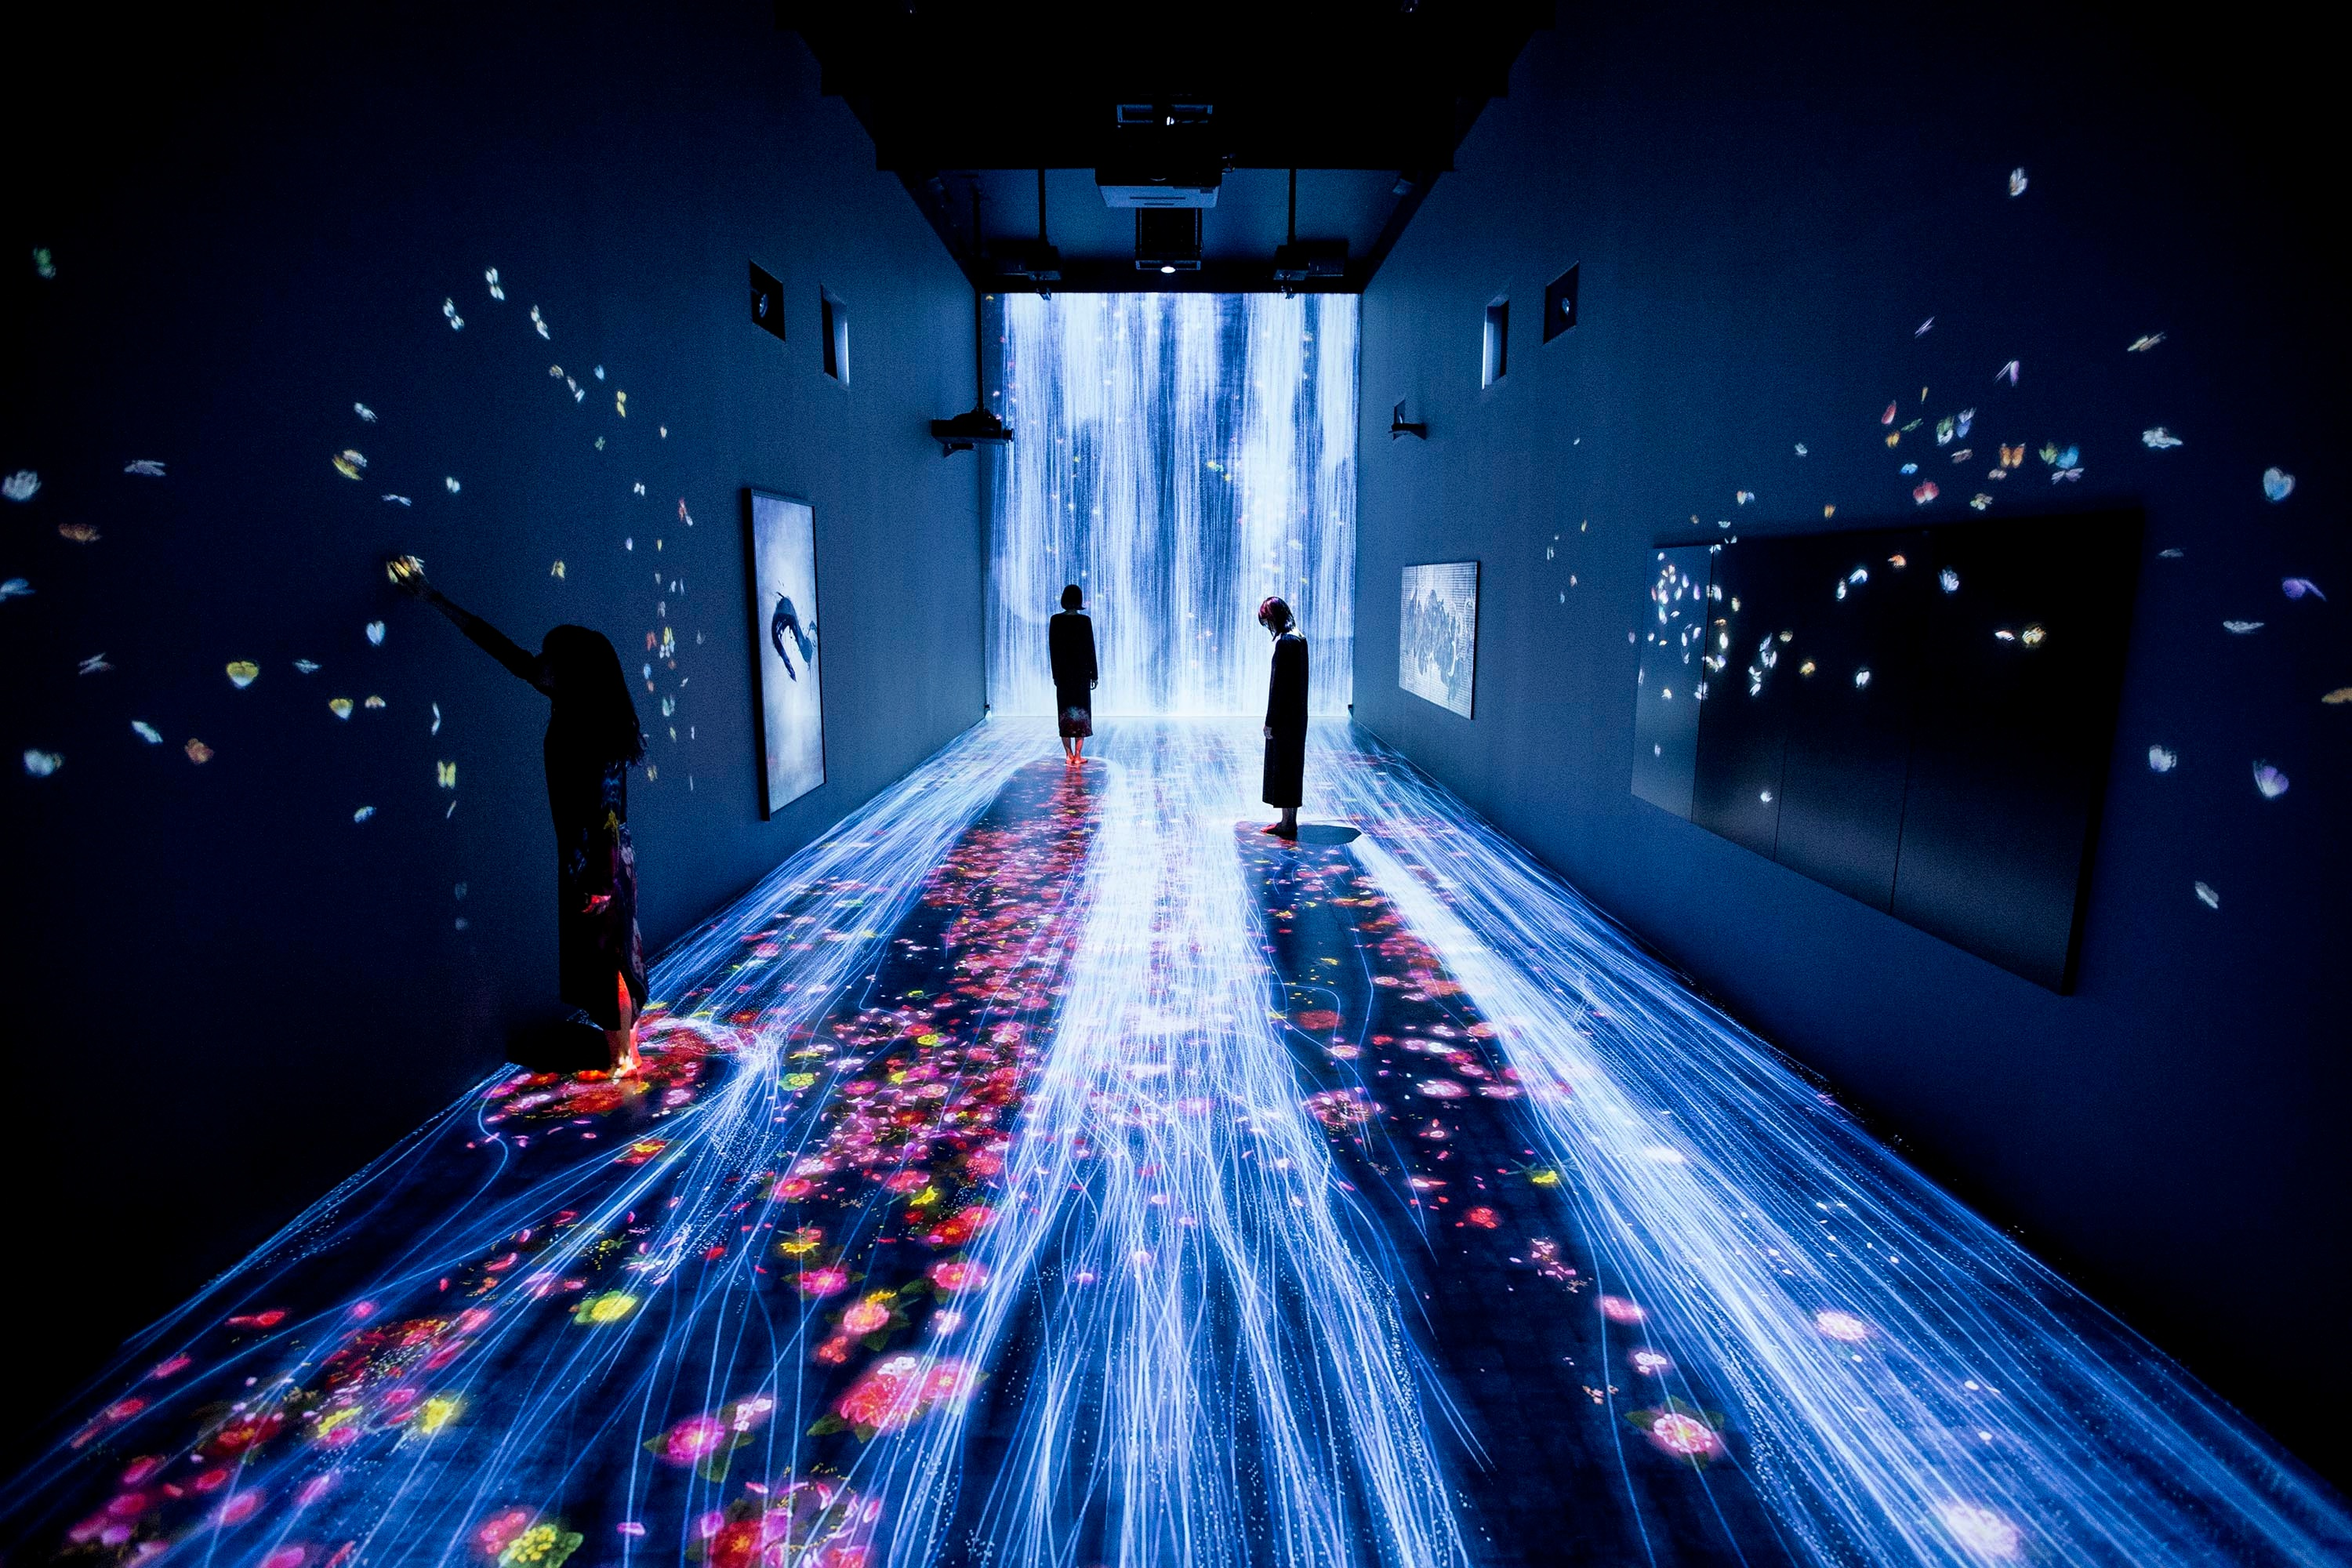 Installation view of teamLab: Transcending Boundaries